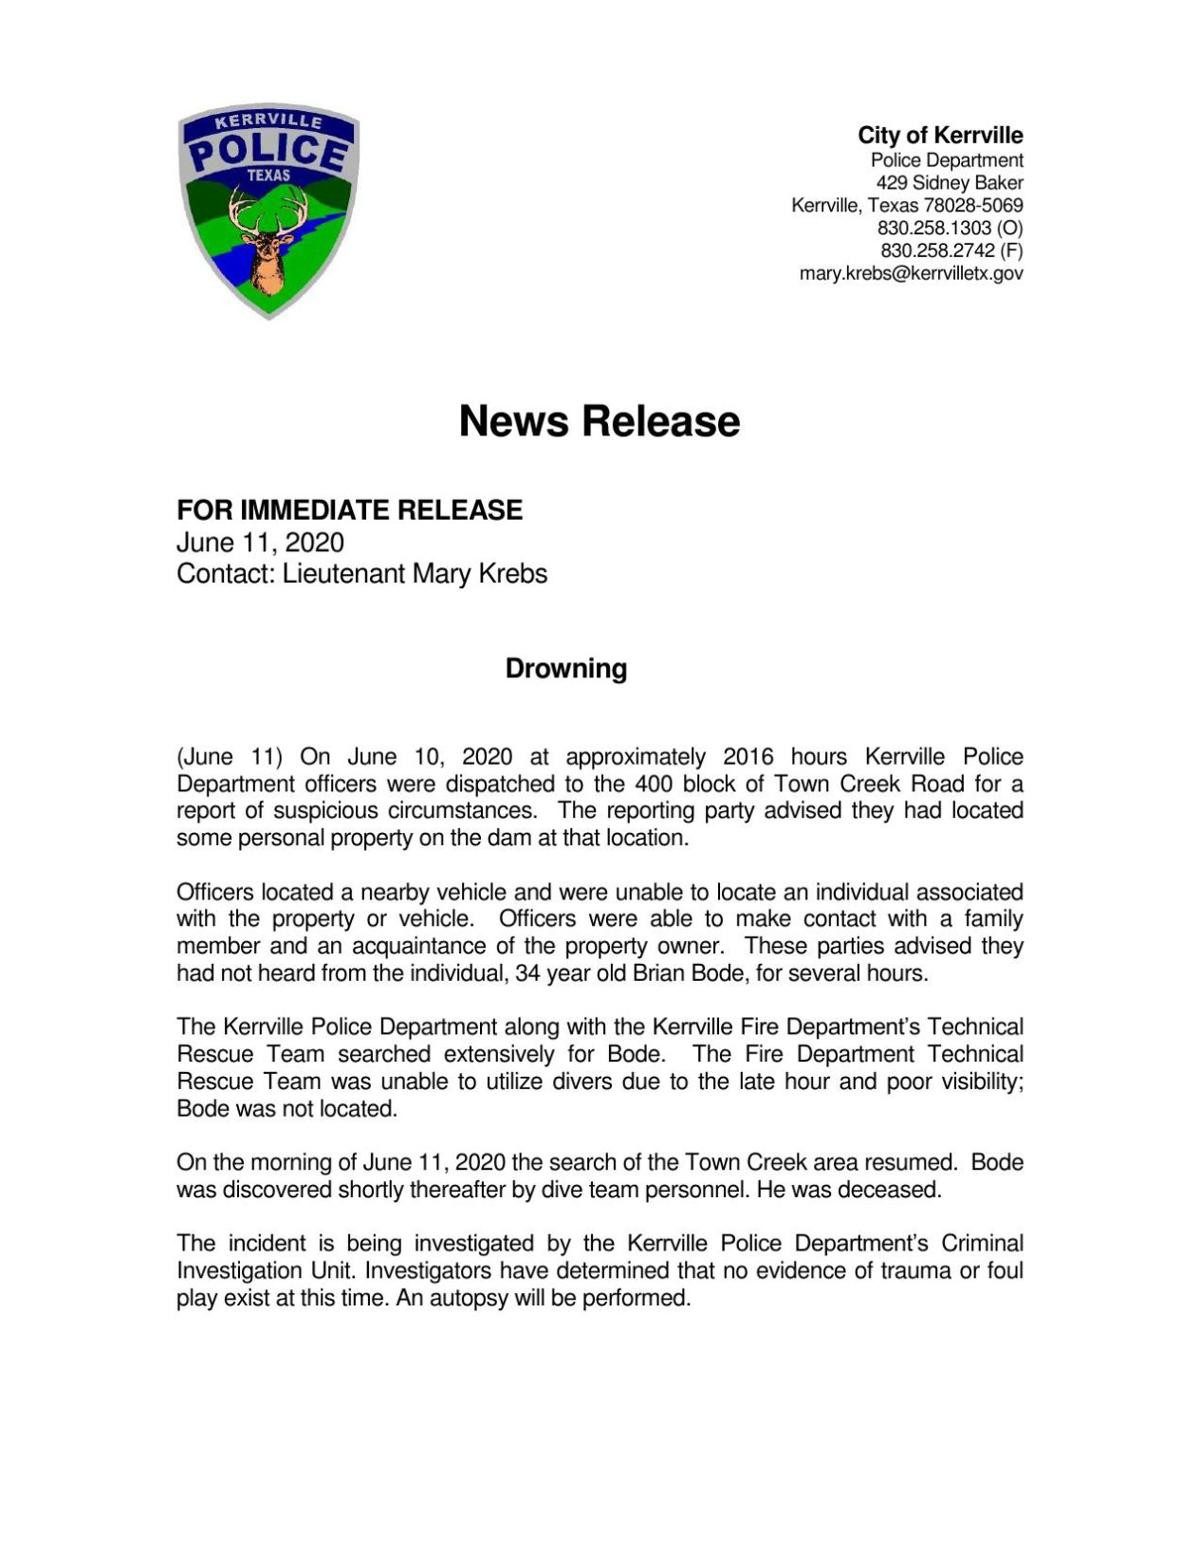 Drowning victim press release